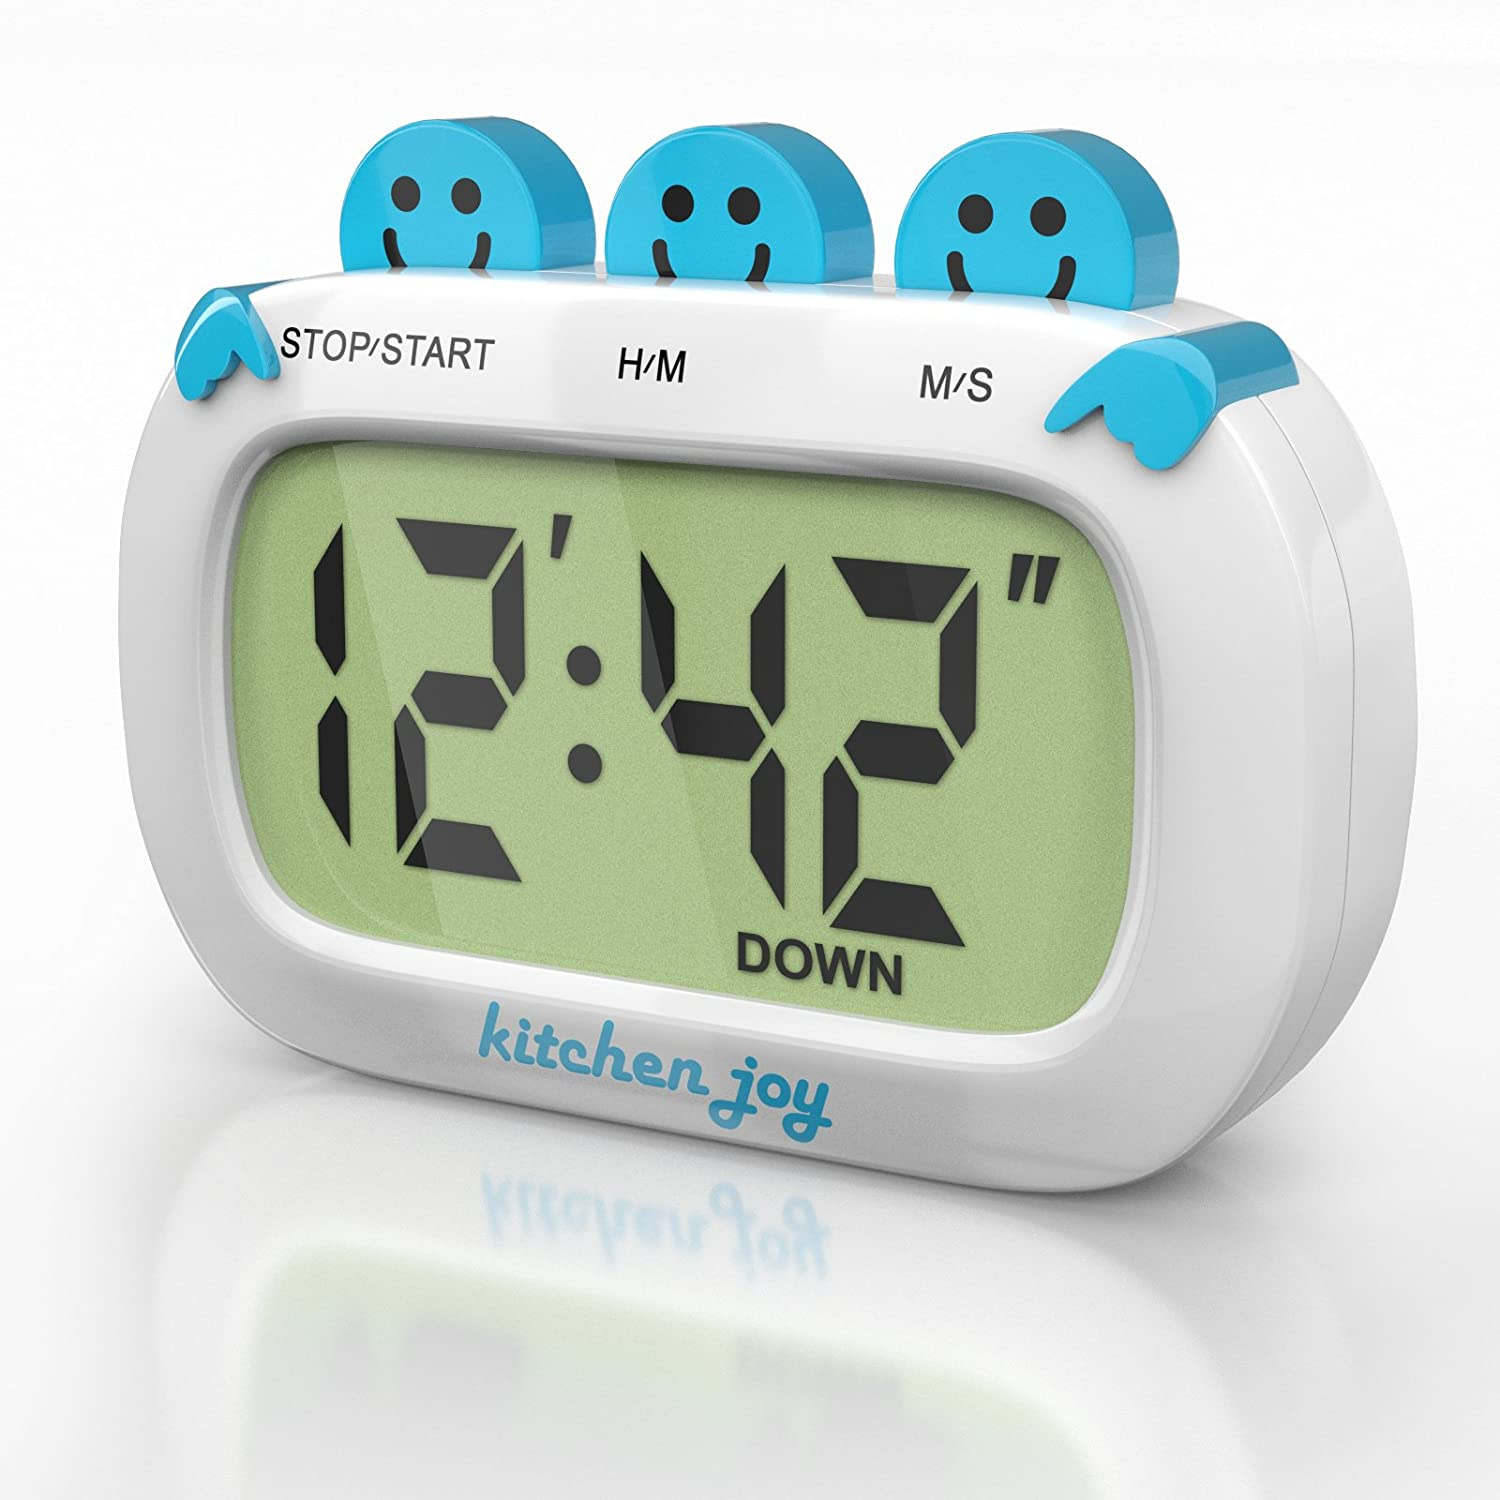 digital kitchen timer kitchen joy with clock and loud